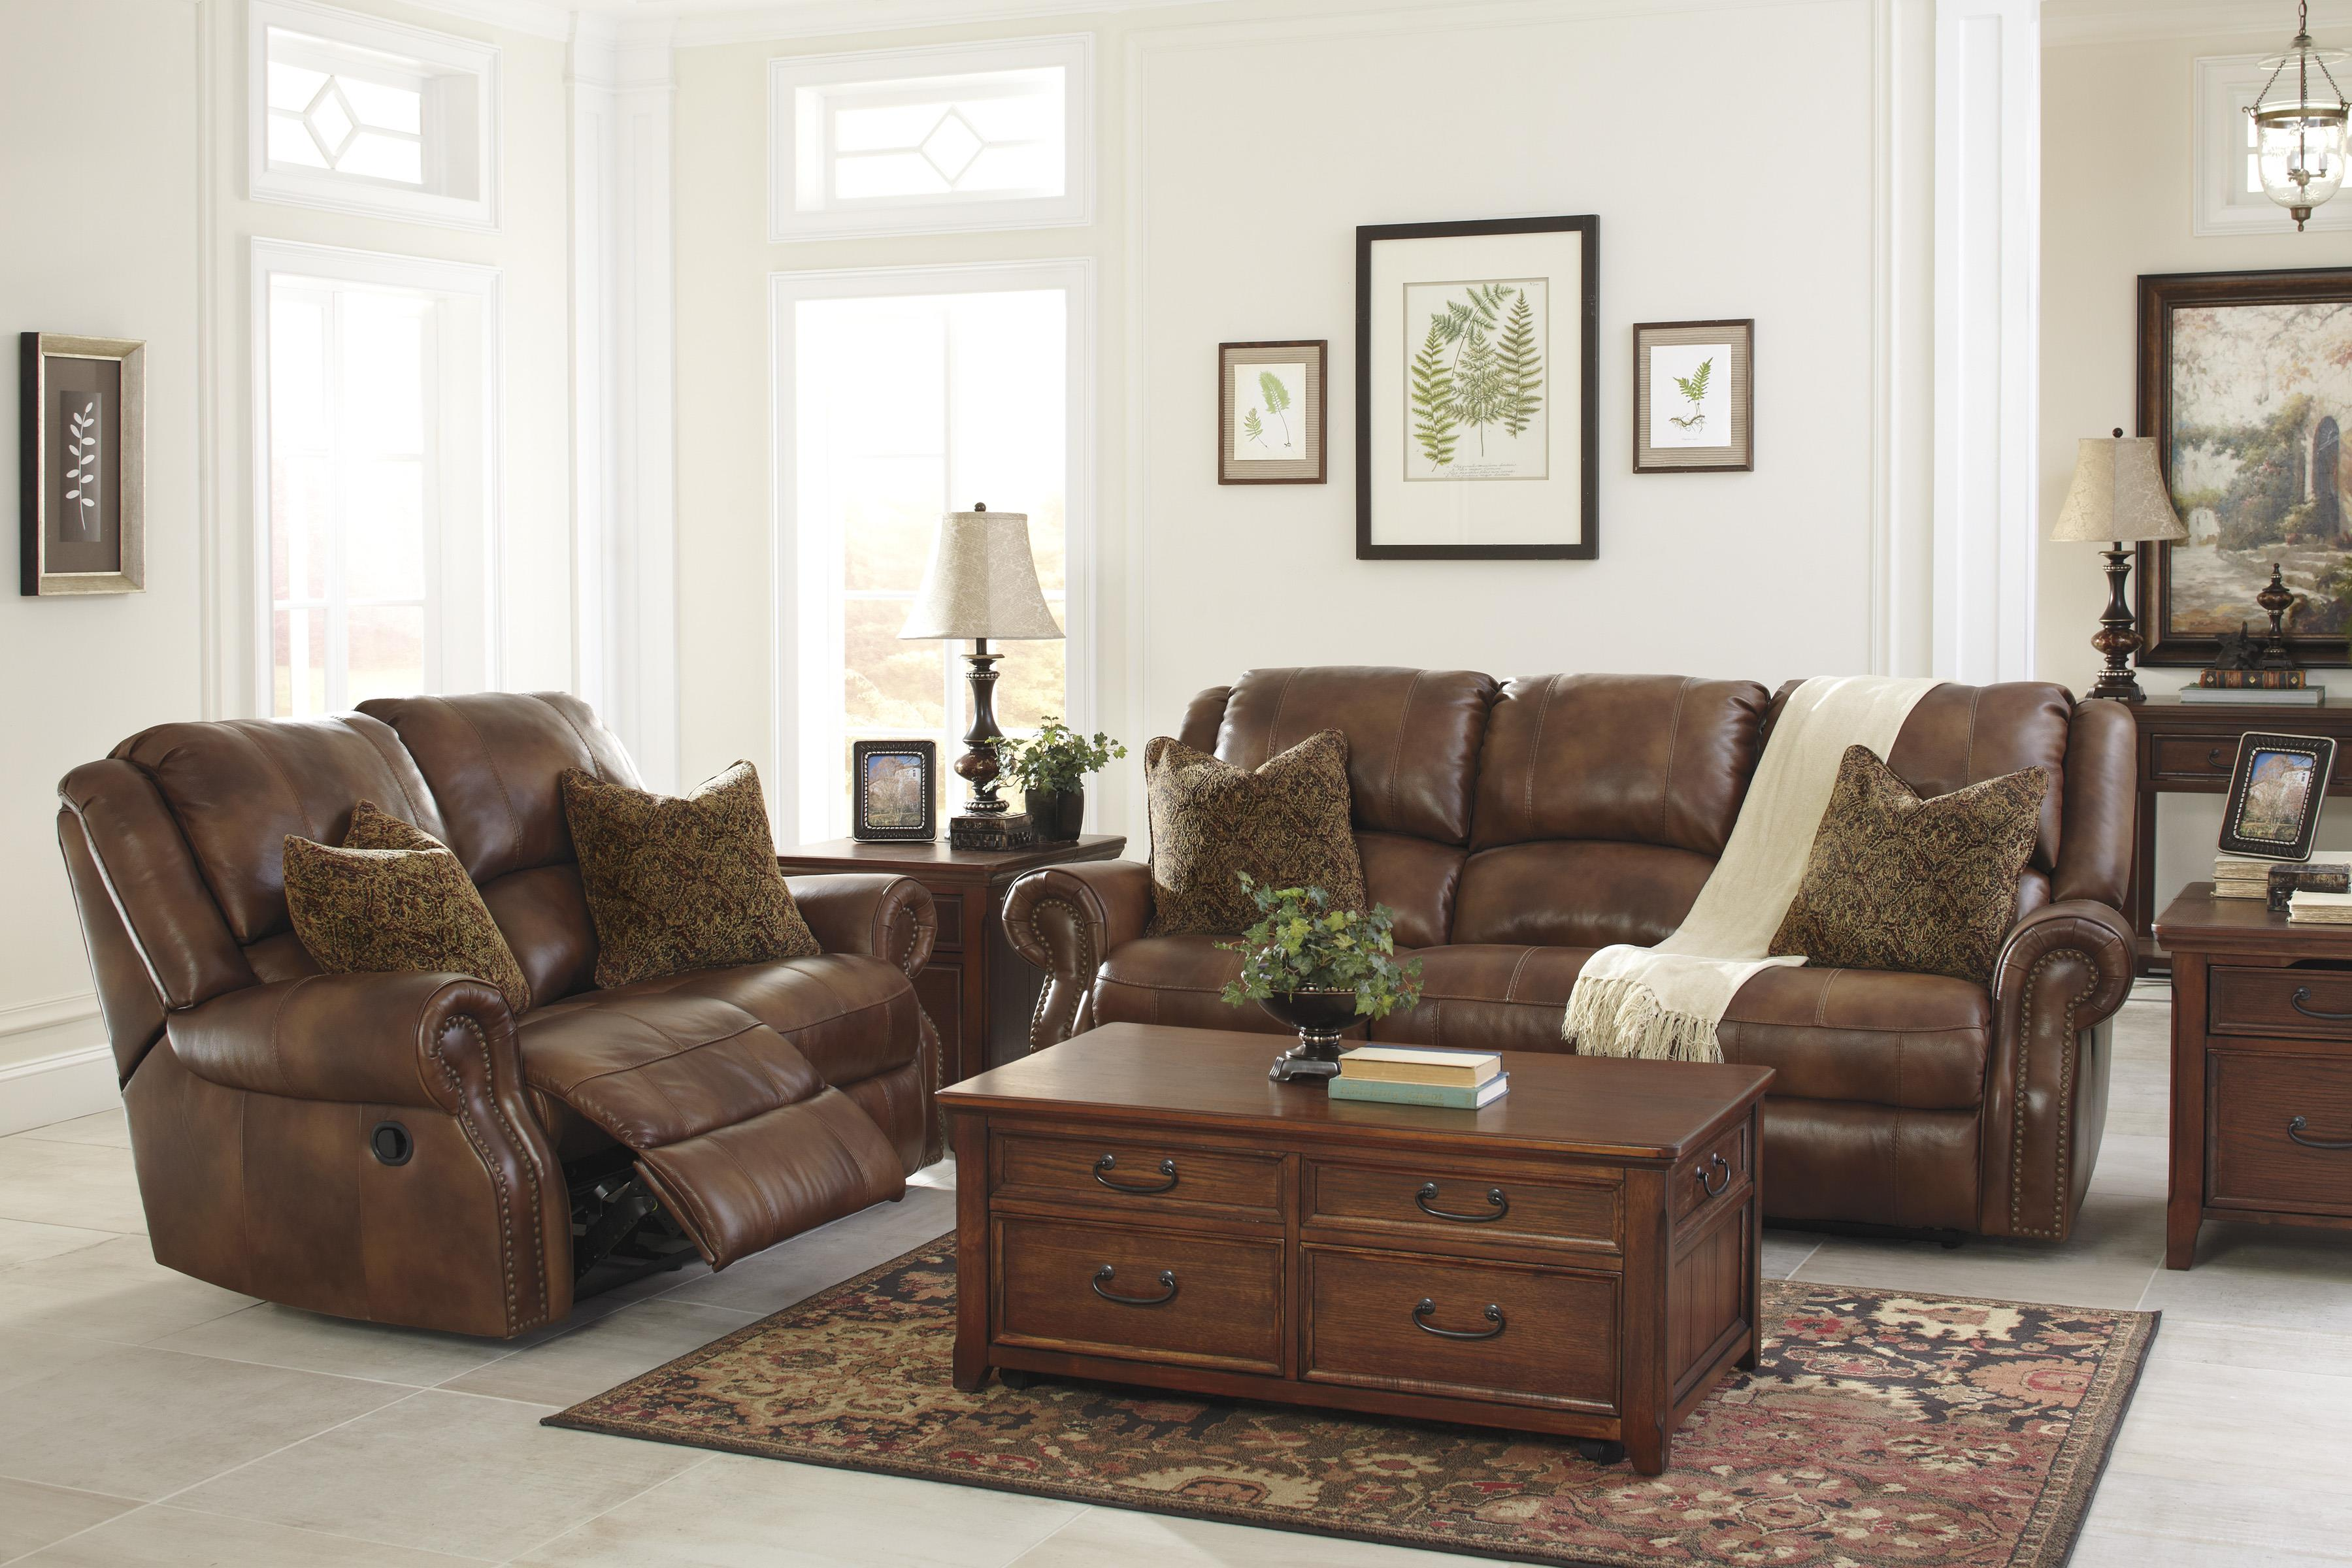 Signature Design By Ashley Walworth Reclining Living Room Group Item